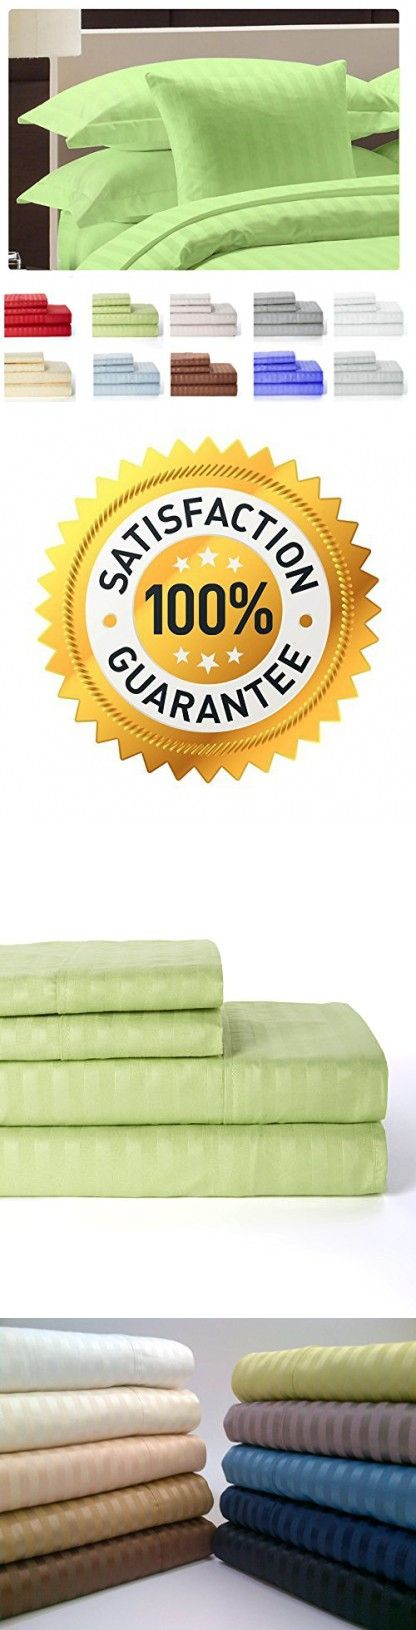 4 Piece: Hotel Luxury Bed Sheets Set,Lux Decor Sheet - Flat Sheet   Fitted Sheet   2 Pillow Cases, Brushed Microfiber 1800 Bedding - Wrinkle, Fade, Stain Resistant - Hypoallergenic(Queen, Green Sage)